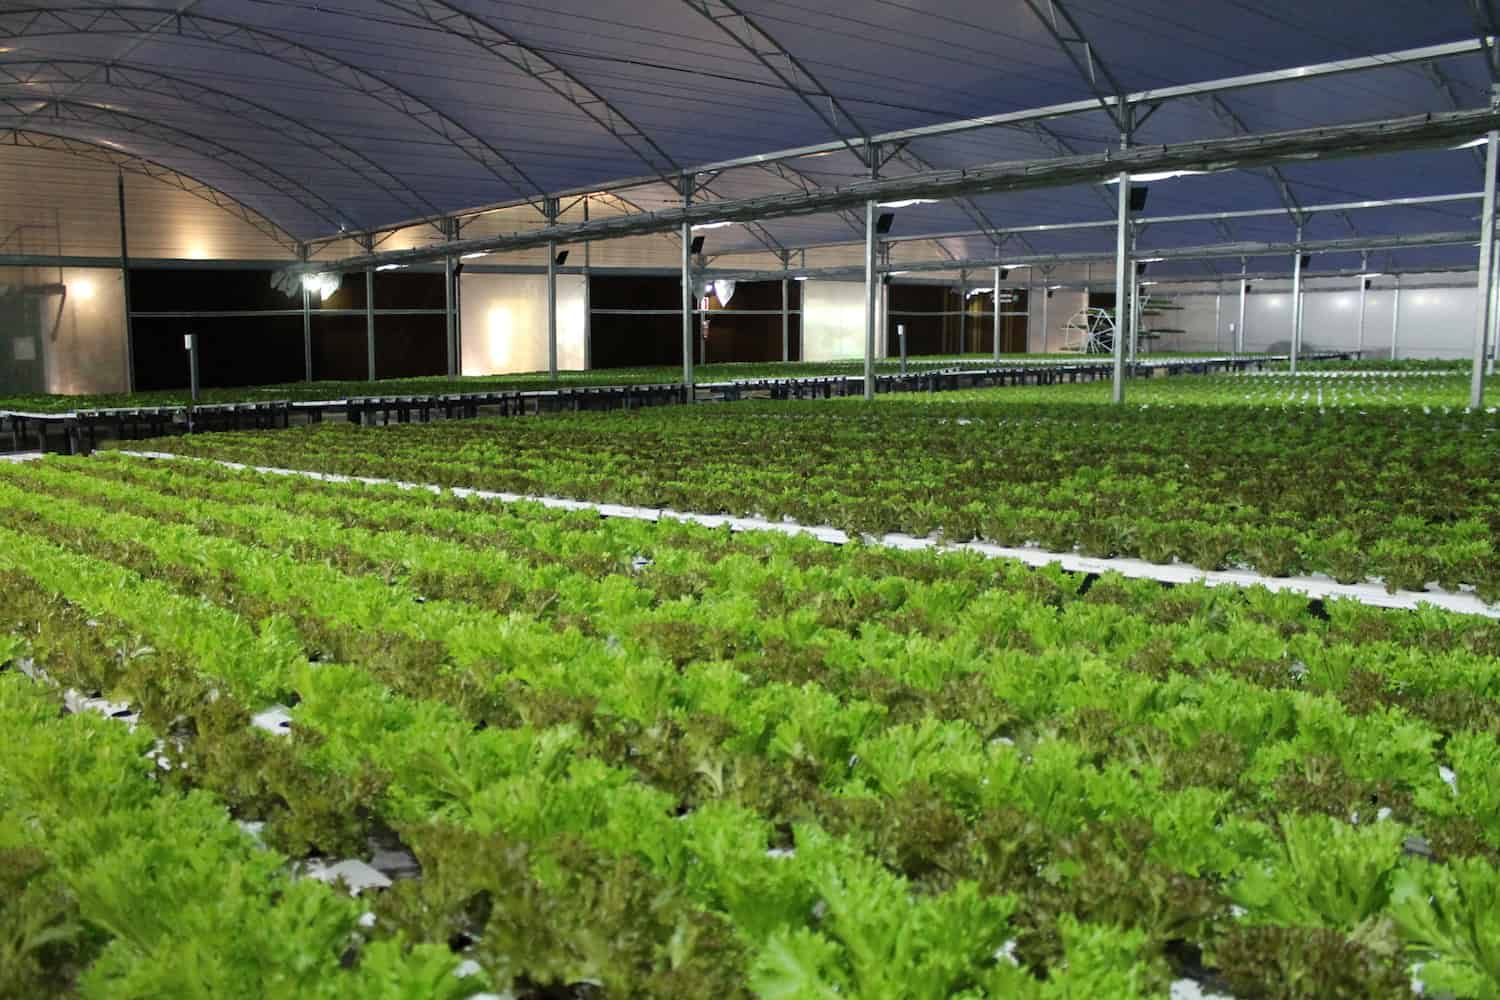 Startup company BeGreen is growing fresh and organic produce inside a Brazilian shopping center